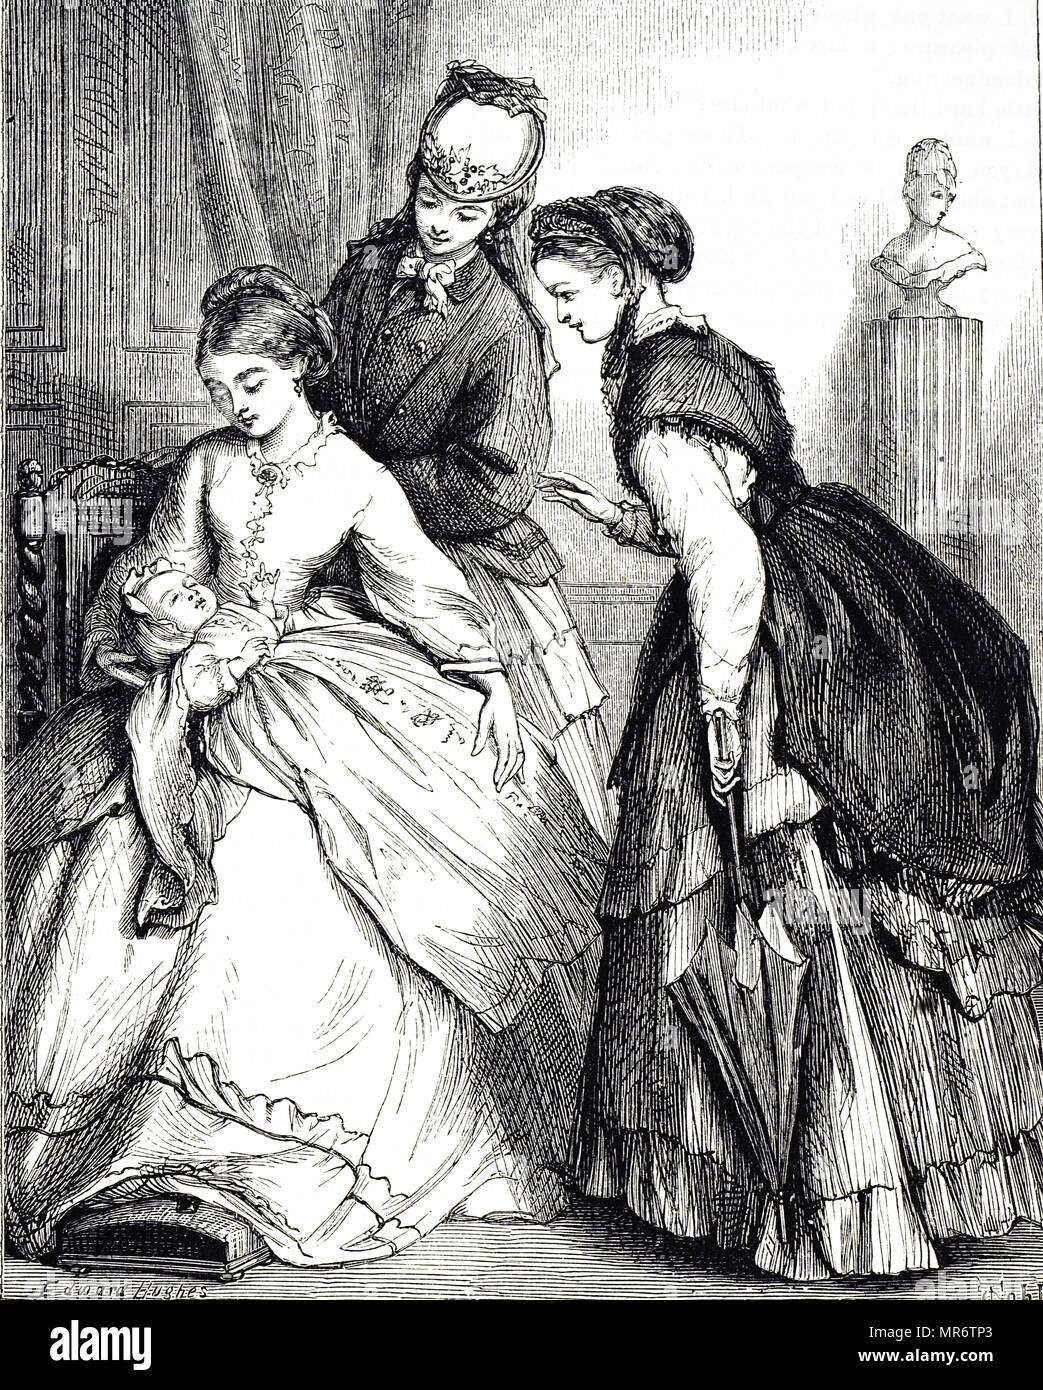 Engraving depicting a new-born being shown off to his aunts. Illustrated by Edward Hughes (1832-1908) a British artist. Dated 19th century Stock Photo